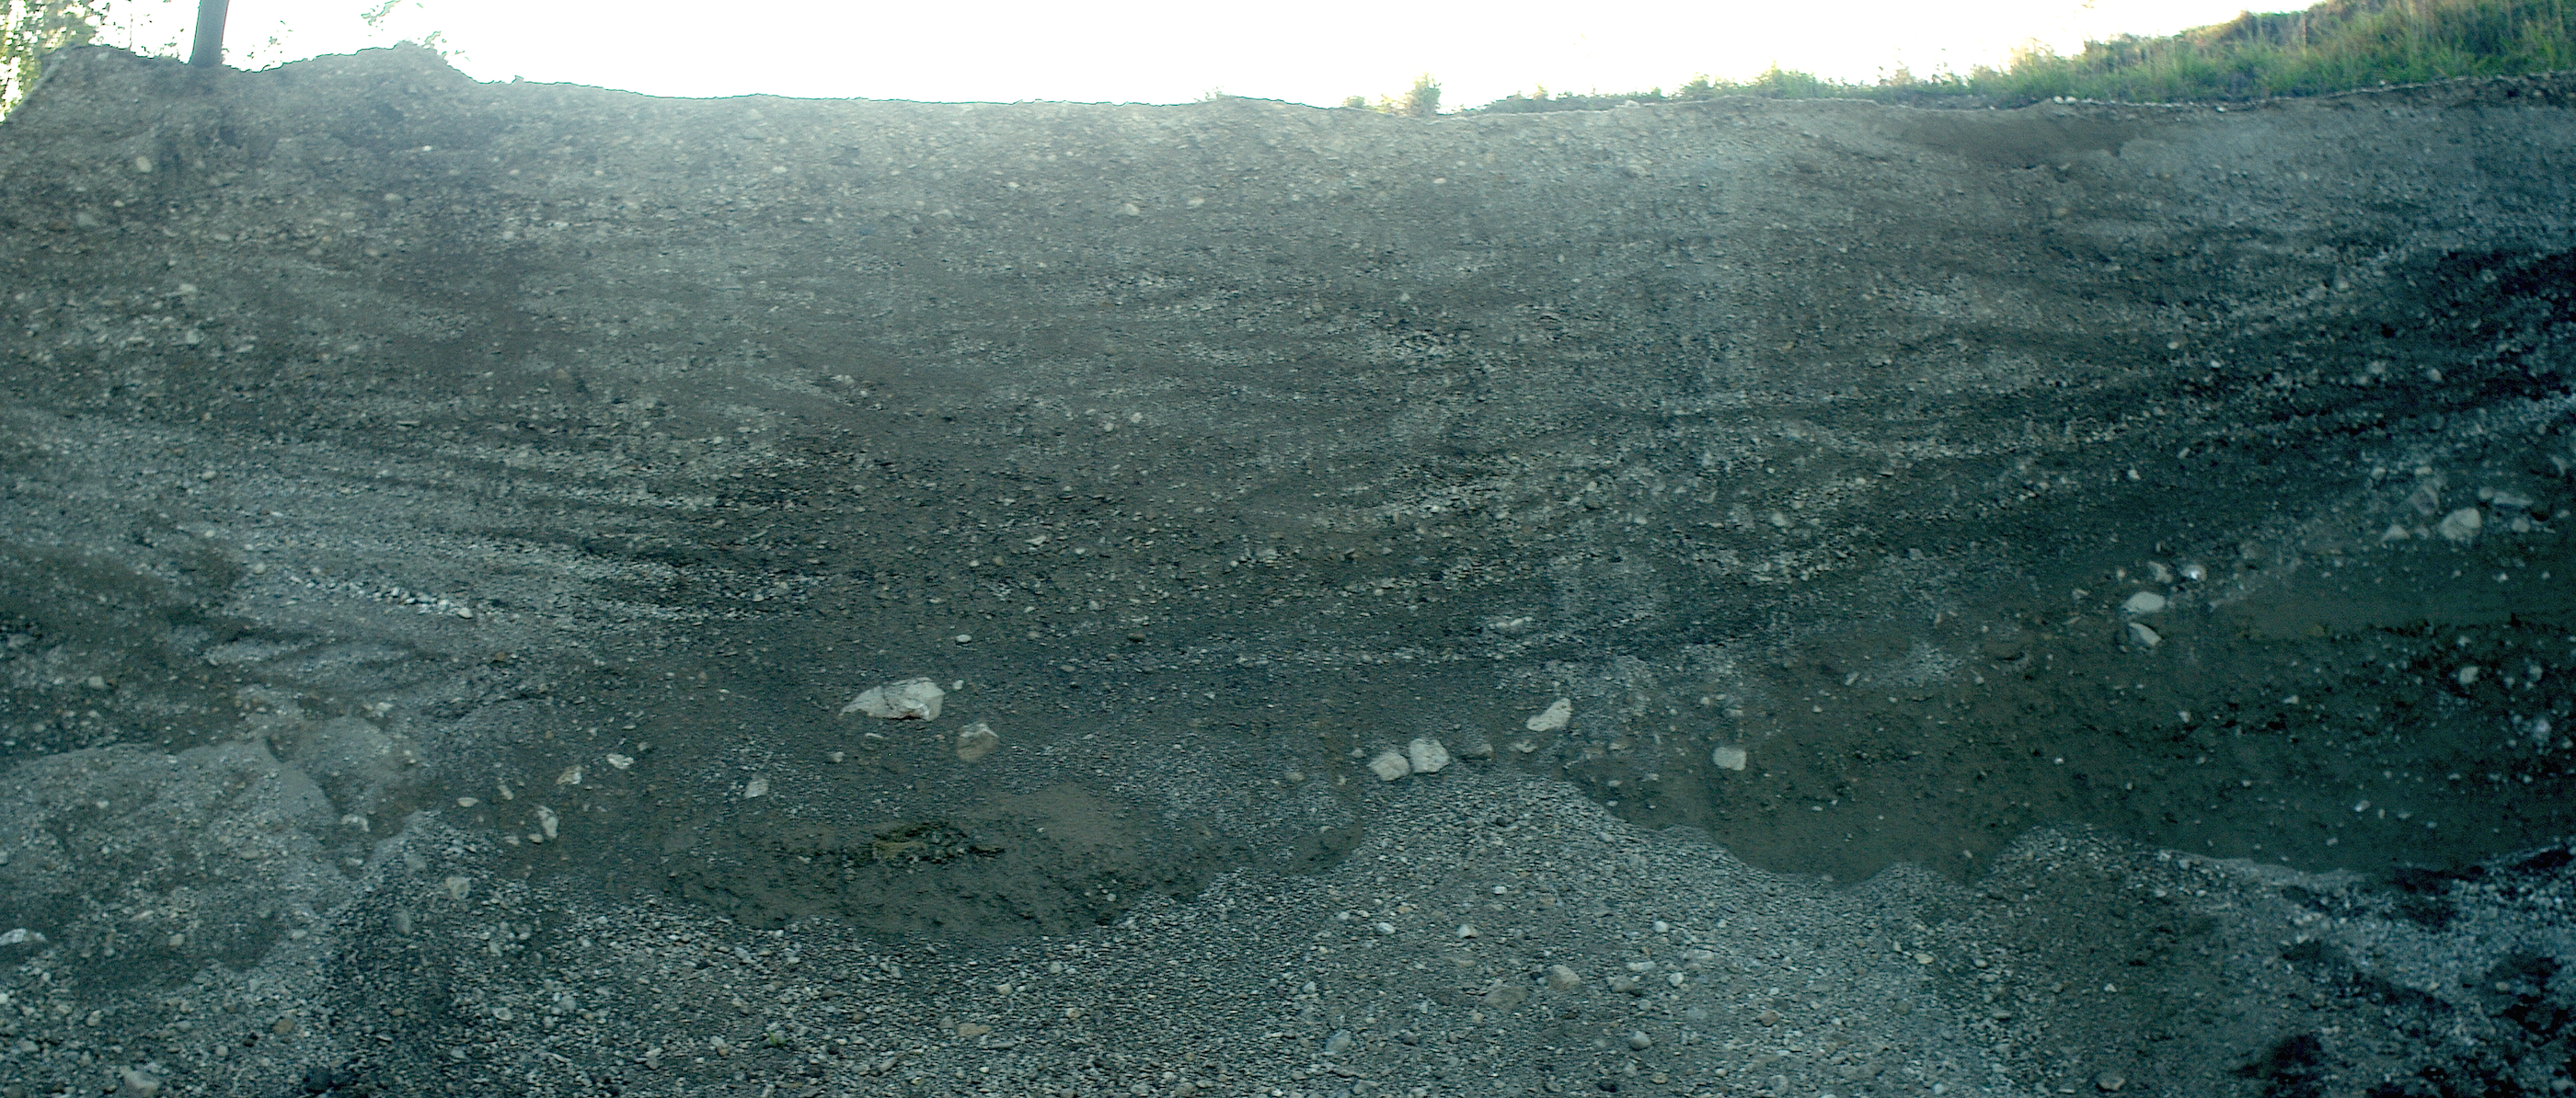 cross-bedded diamictite Eglsee gravel pit Chiemgau impact